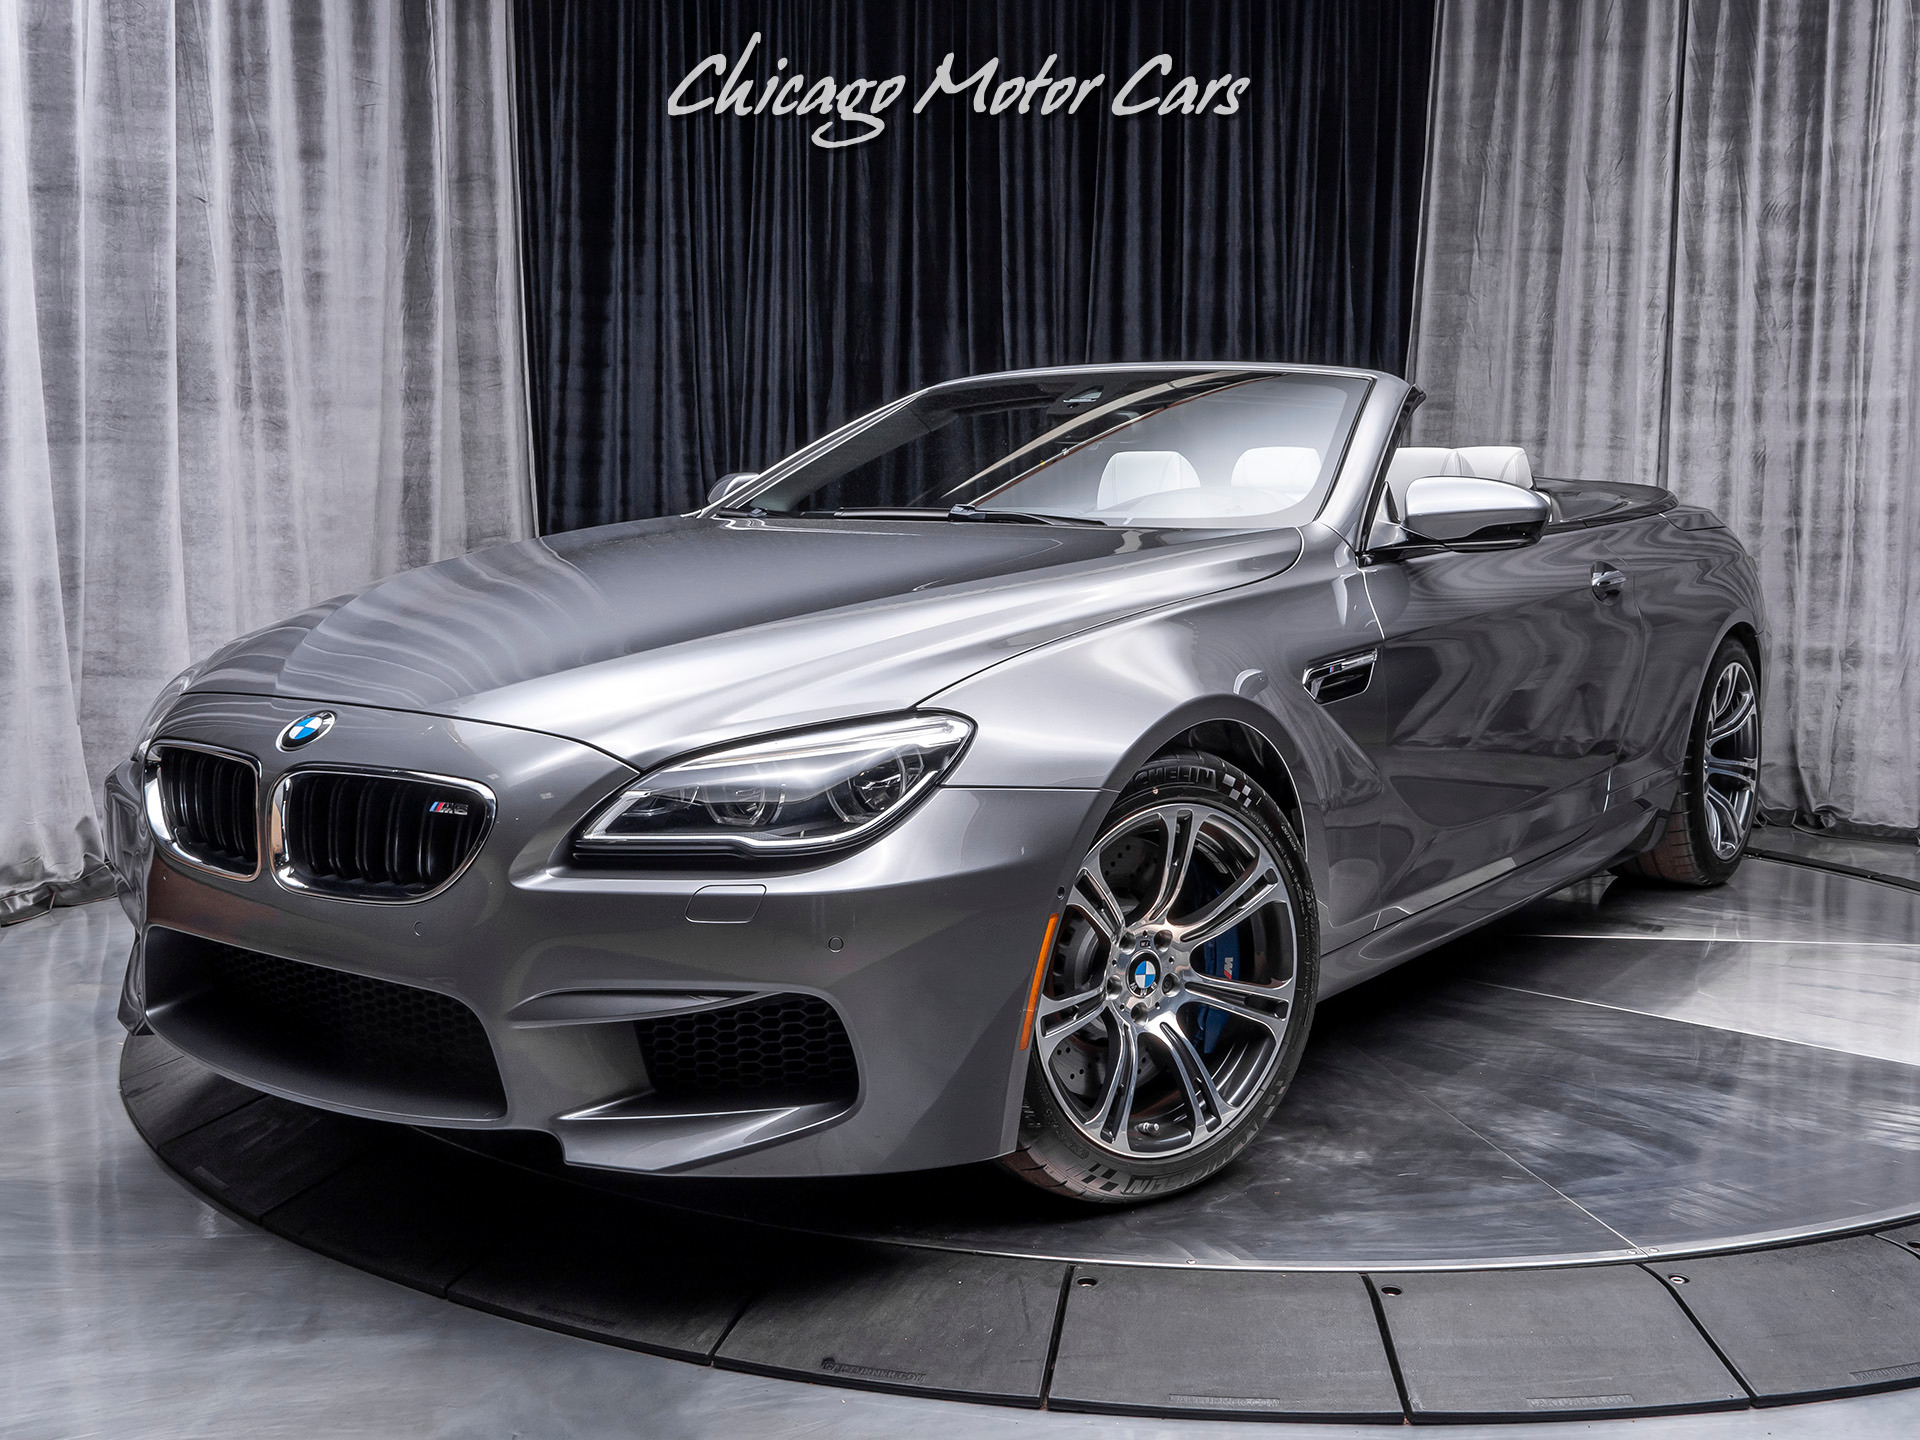 Used 2016 Bmw M6 Convertible Executive Package For Sale Special Pricing Chicago Motor Cars Stock 16006